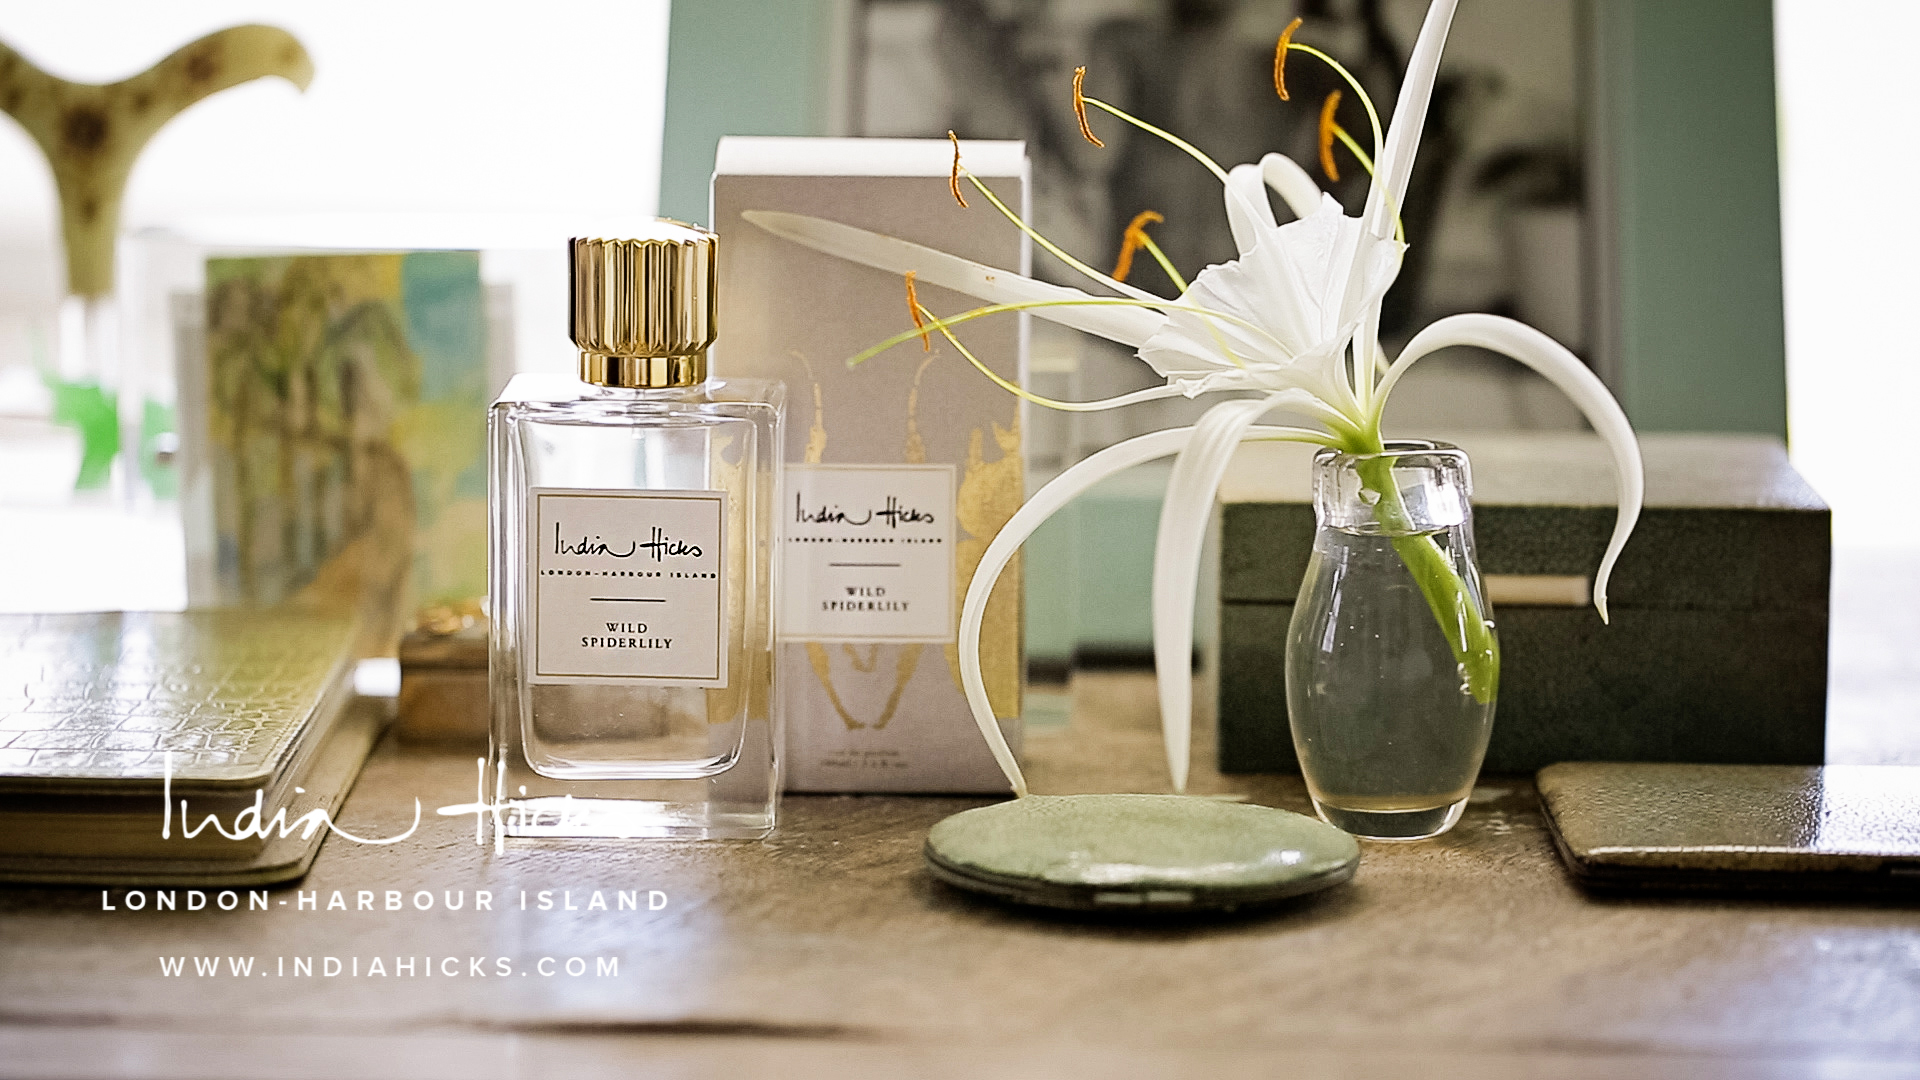 """India Hicks Wild Spiderlily Eau de Parfum - A perfect blend of sweet and spicy, this is the favorite fragrance at India Hicks hands down. The spider lily is a beautiful fragile flower found in the Caribbean and admired by India and her family as they watch it grow out of the pink sand. The type of perfume that you wear and hear everyone say, """"What is that perfume you're wearing?!"""""""